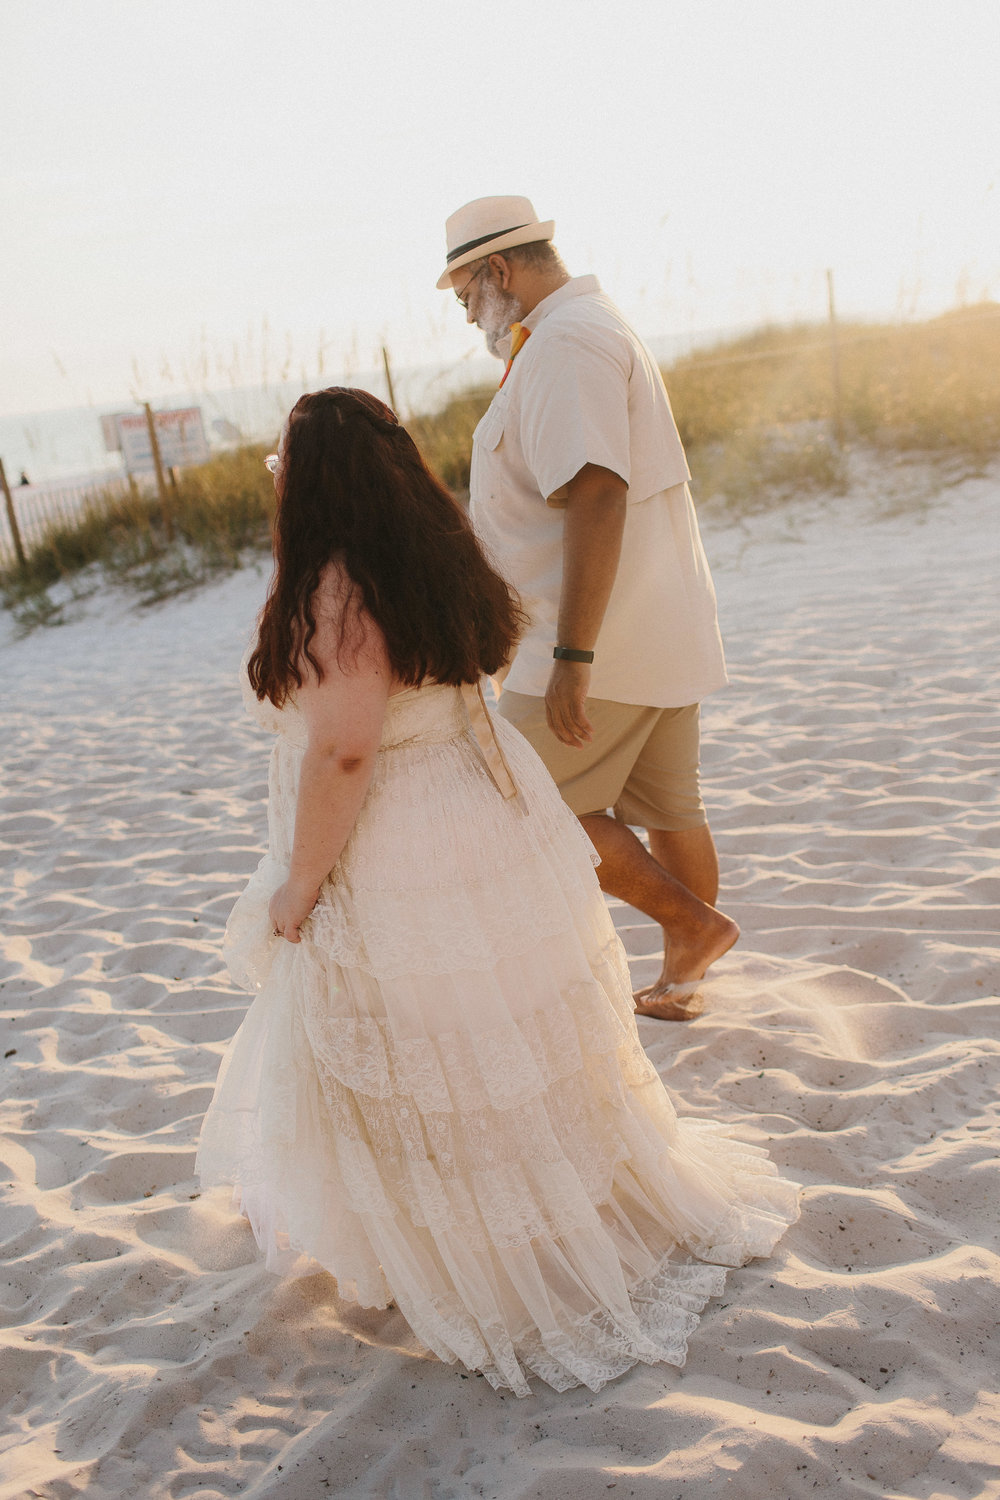 destin_sunset_beach_elopement_intimate_wedding_photographer_florida_documentary_1148.jpg